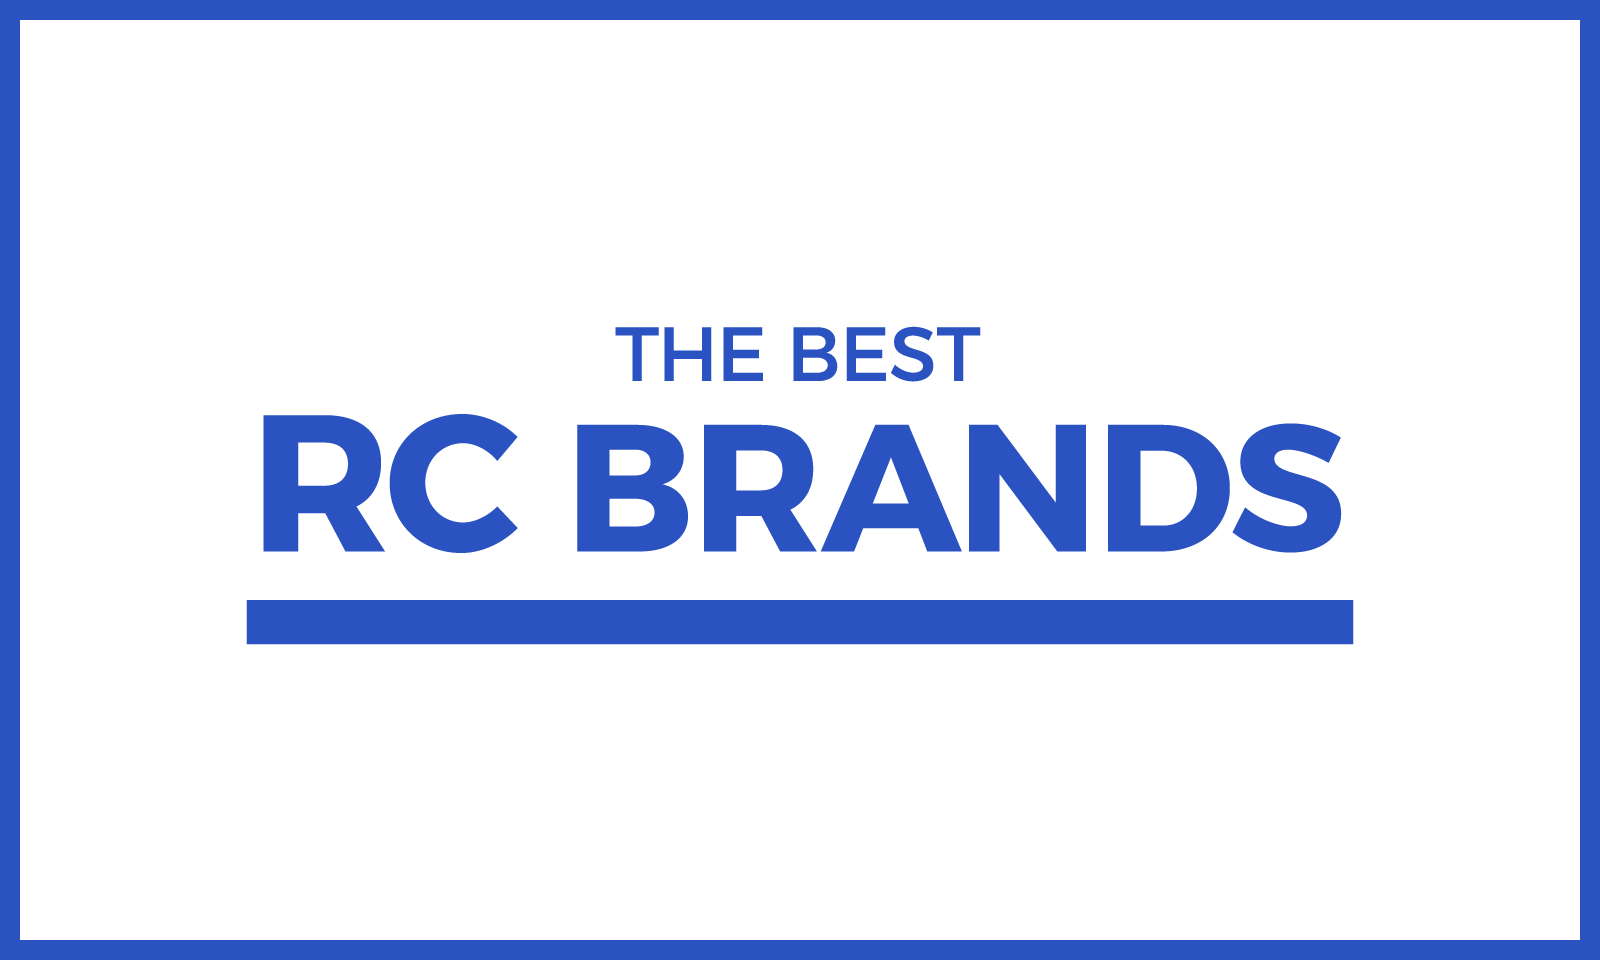 Best RC Brands